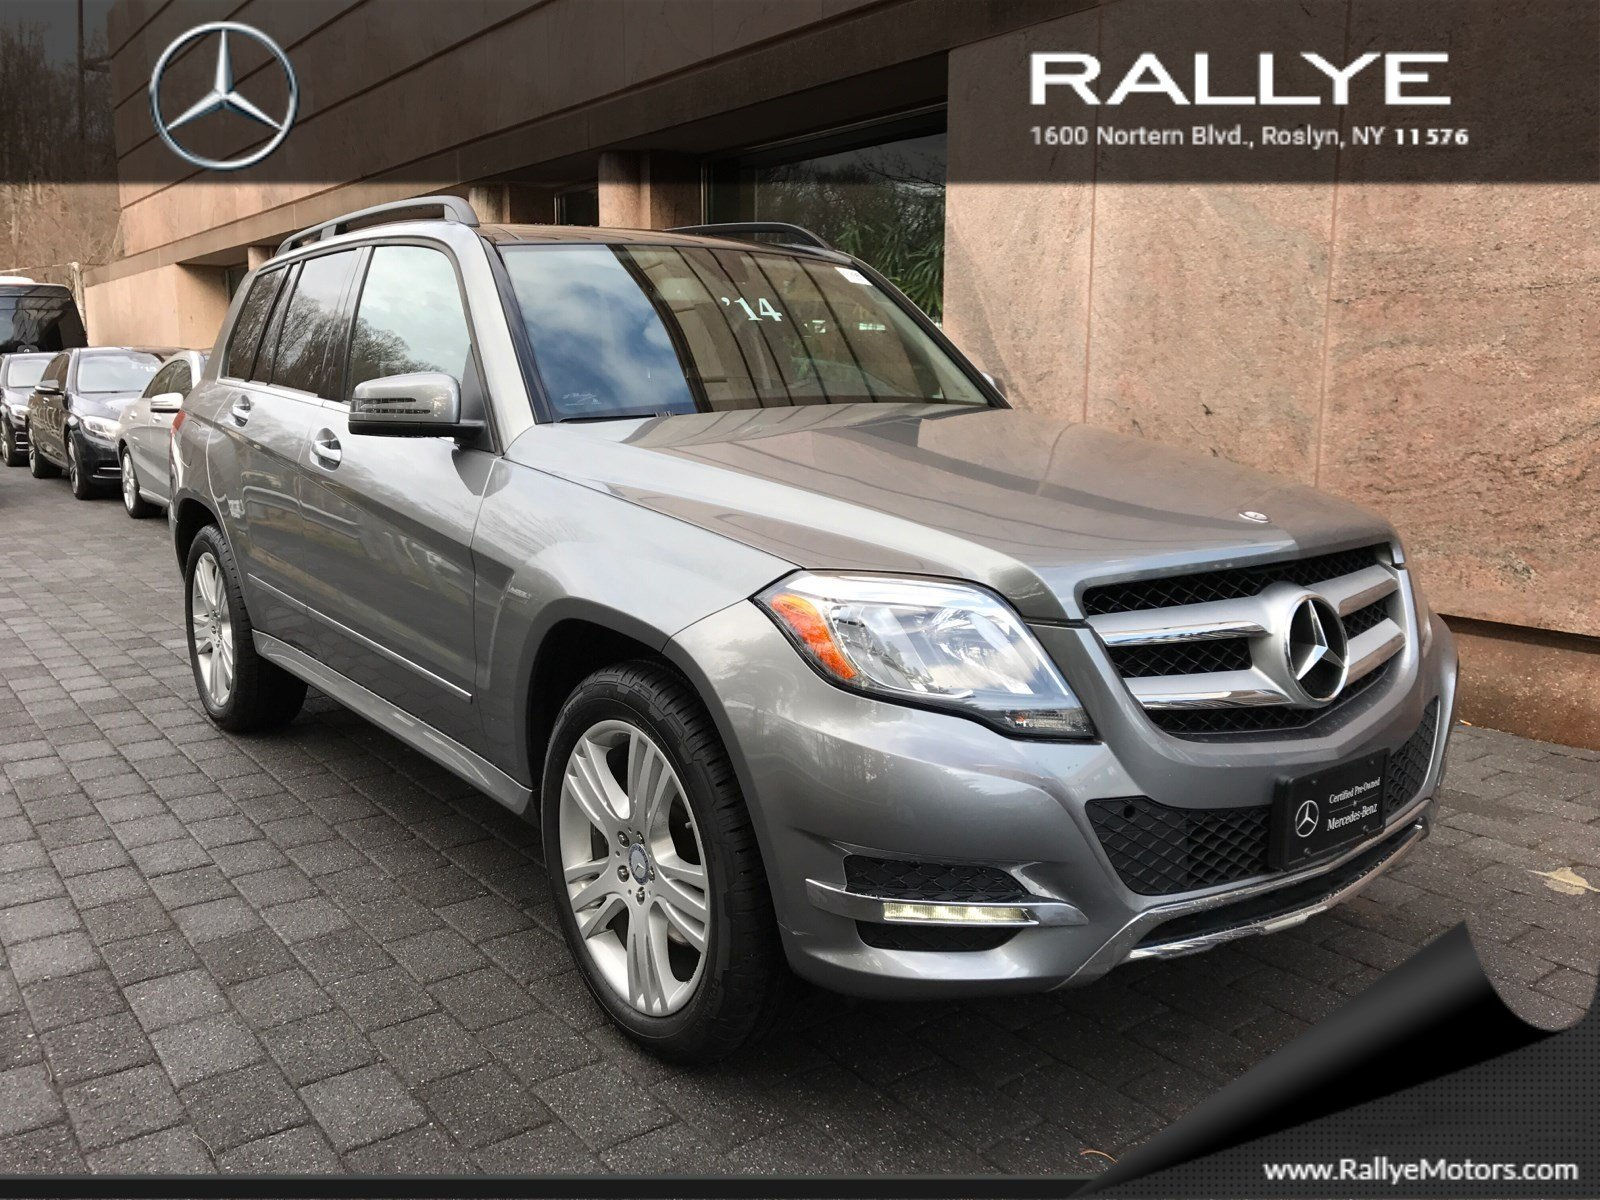 certified pre owned 2014 mercedes benz glk glk 350 sport utility in roslyn 27298 rallye motors. Black Bedroom Furniture Sets. Home Design Ideas